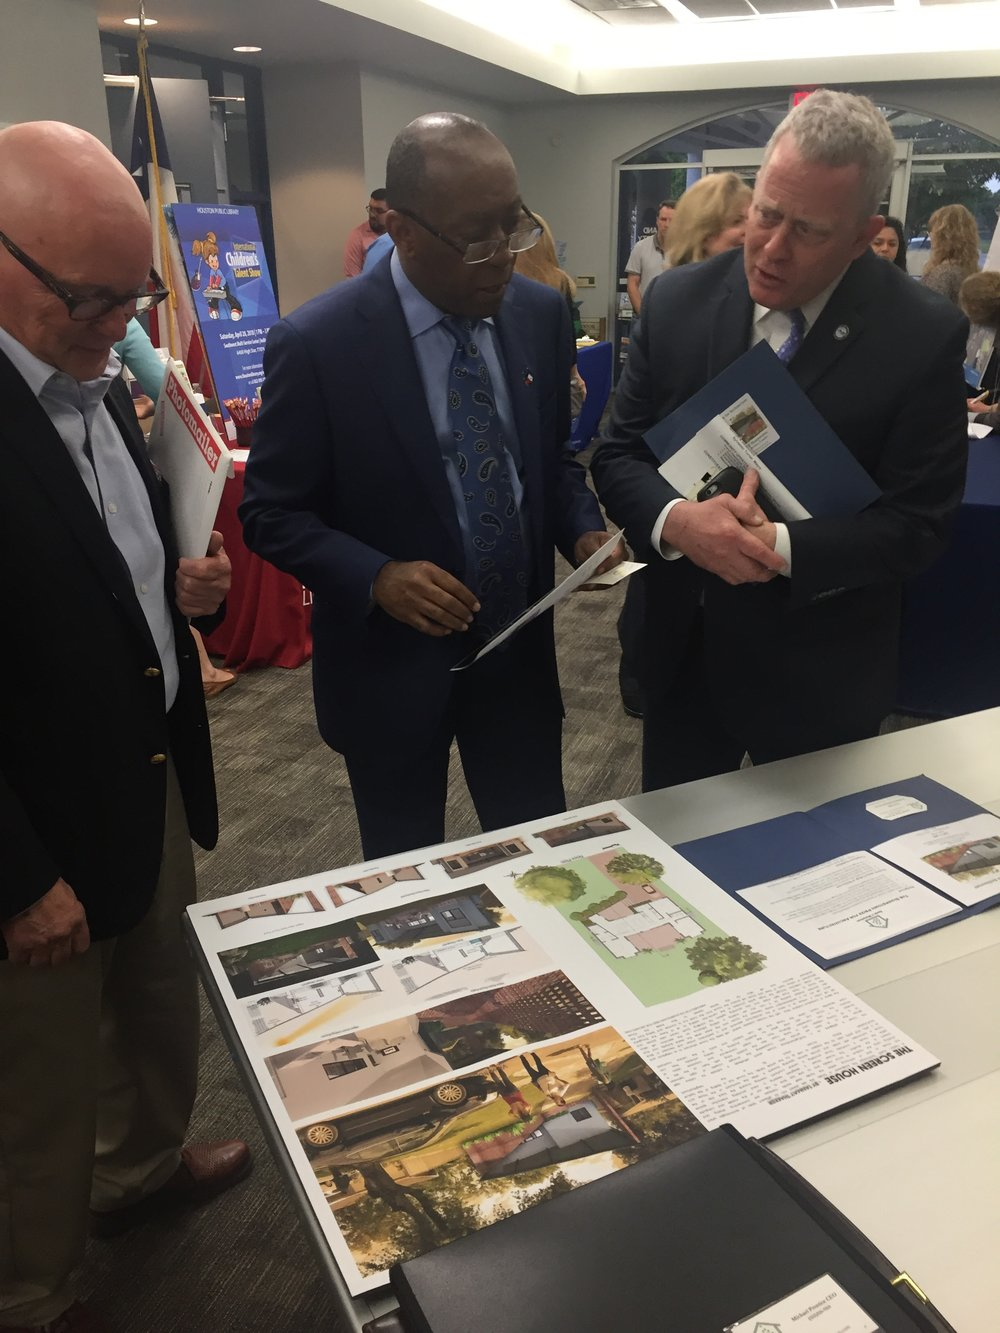 Michael Prentice showing display of winning design for the Sharpstown Prize for Architecture to Houston Mayor Sylvester Turner and Houston City Councilman David Robinson during the District J community meeting.